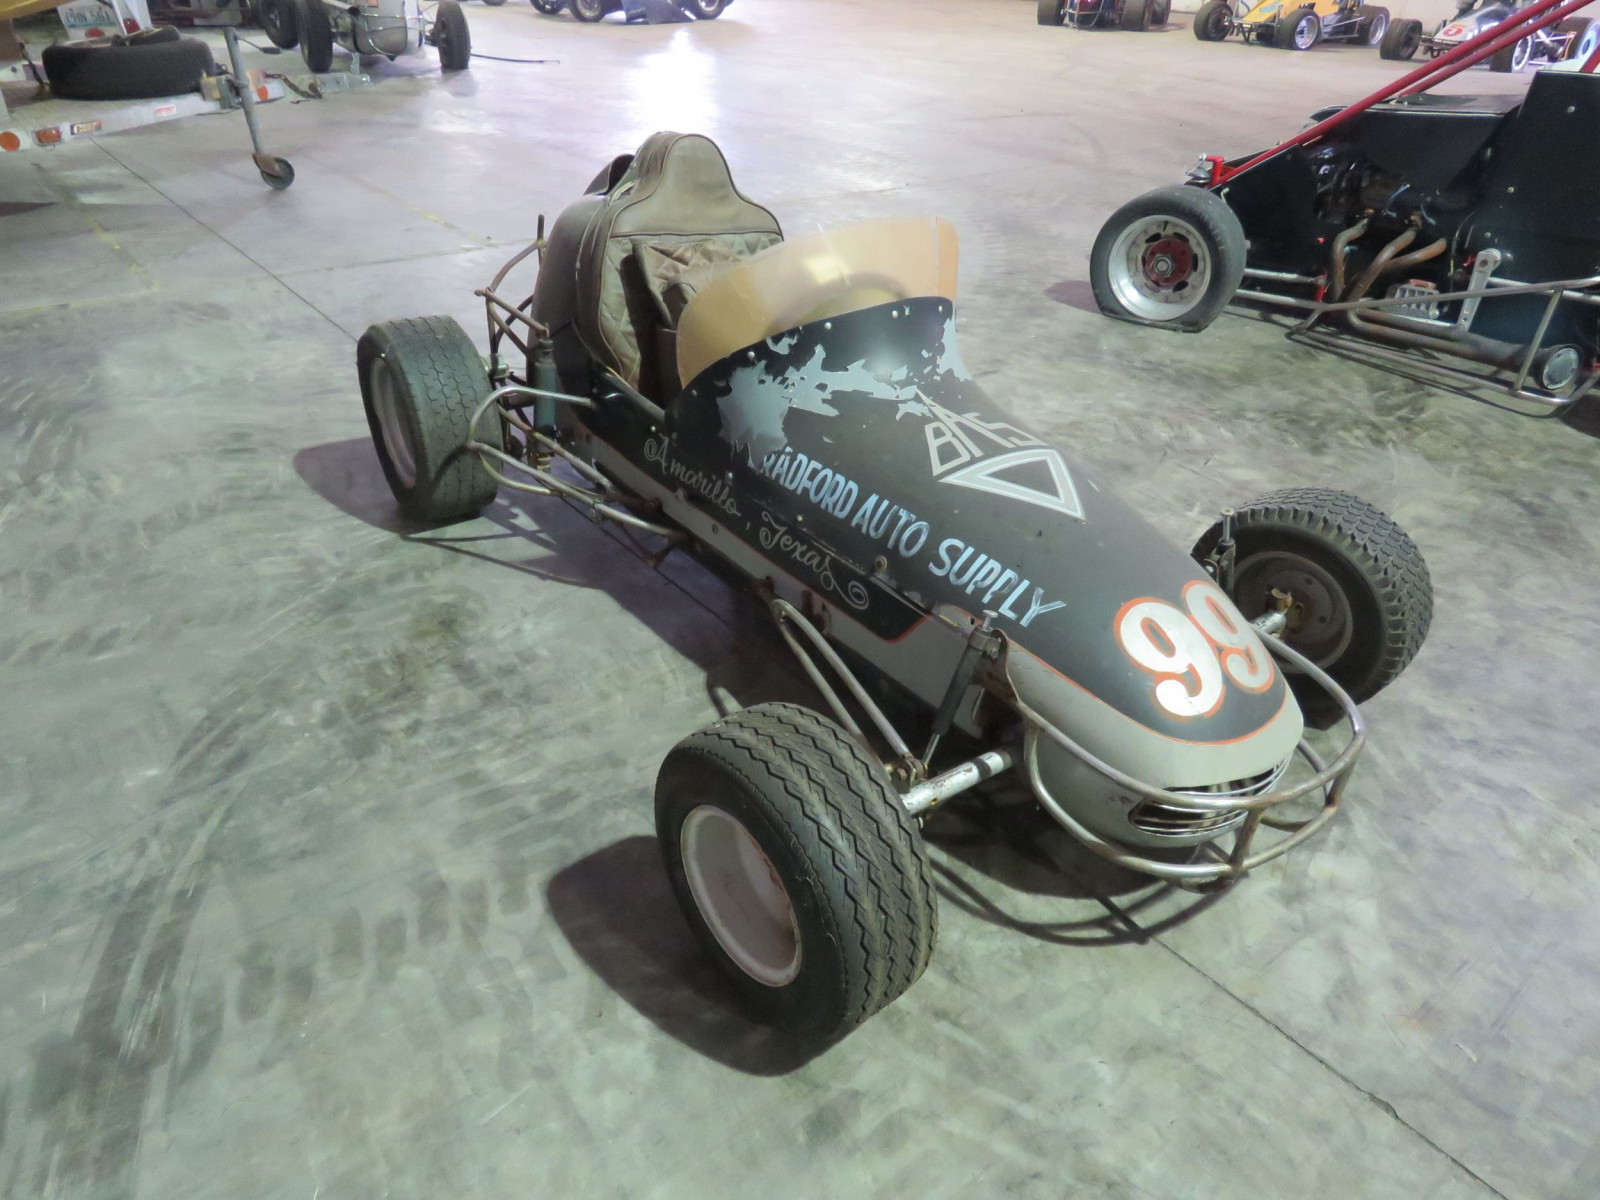 Vintage  1/2 scale Midget Sprint Race Car - Image 4